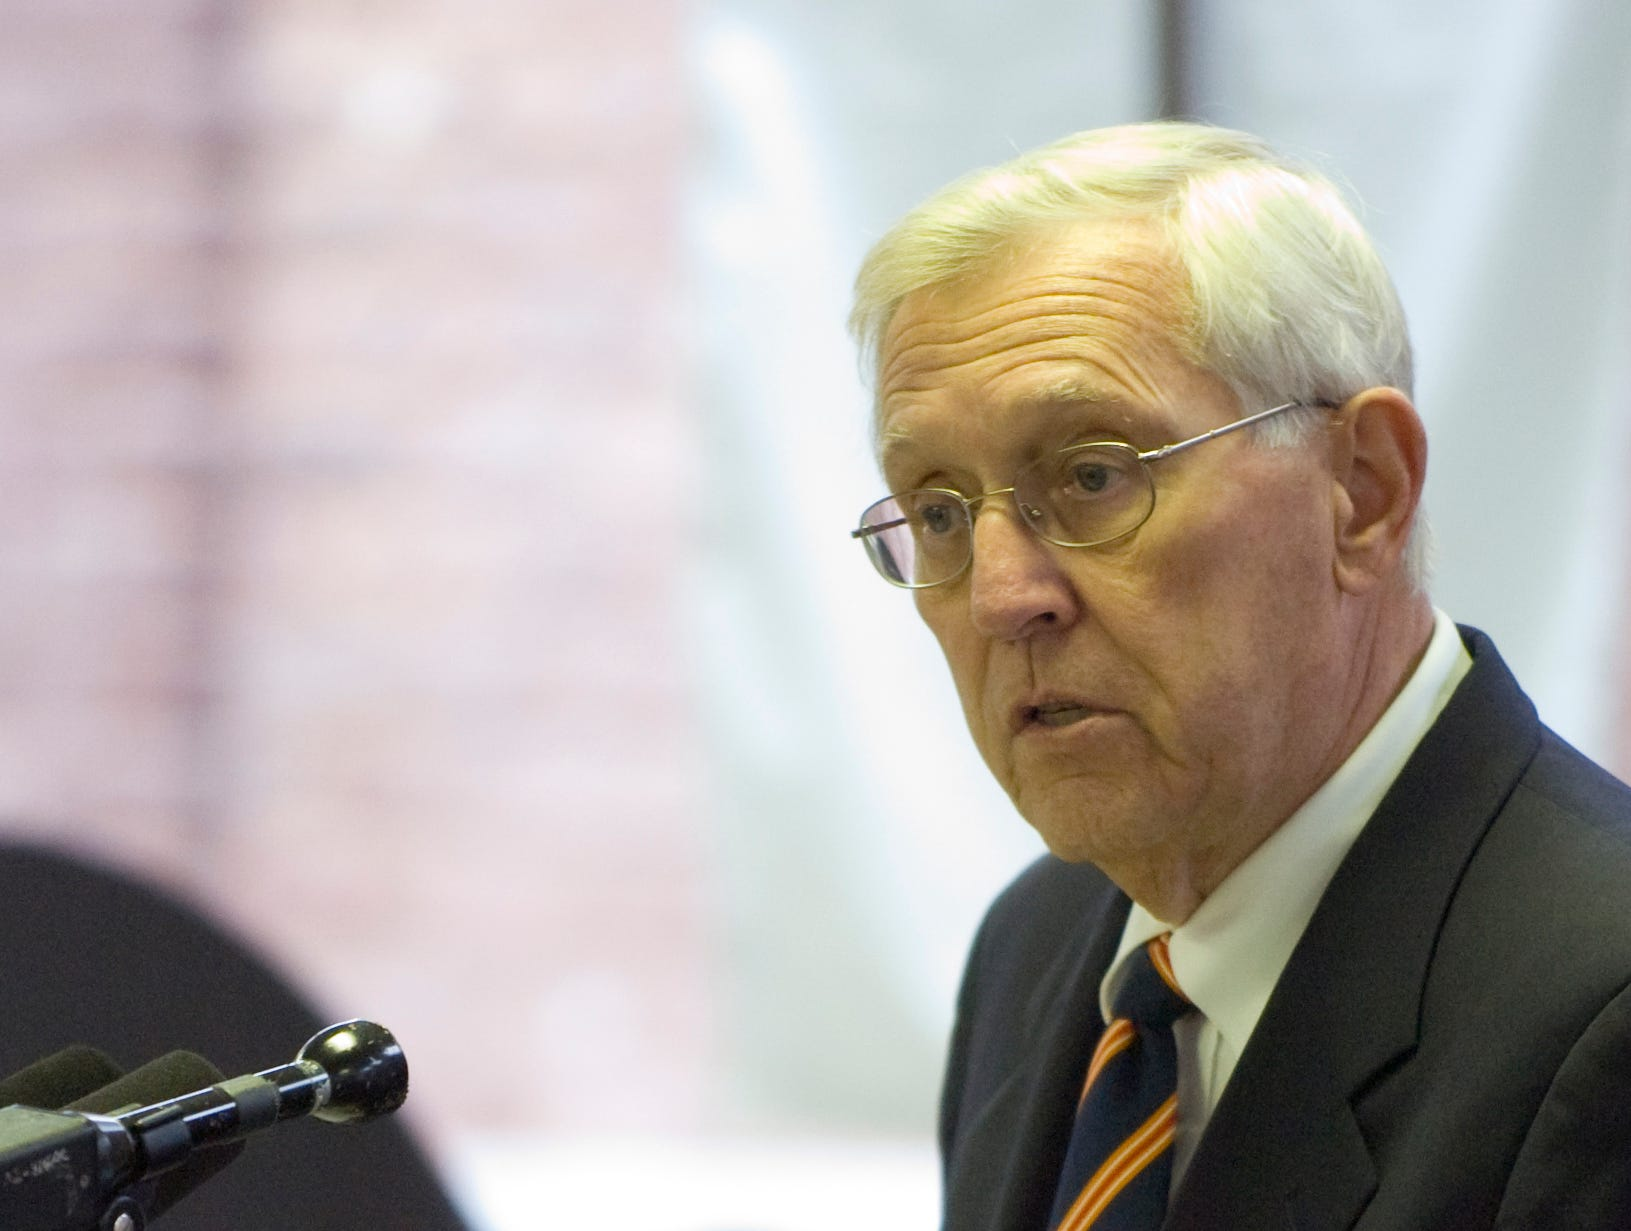 Former Tennessee Gov. Don Sundquist delivers a statement on behalf of former Senator Howard Baker who was not present during the Lincoln Memorial University - John J. Duncan Jr. School of Law dedication ceremony Friday, March 27, 2009.